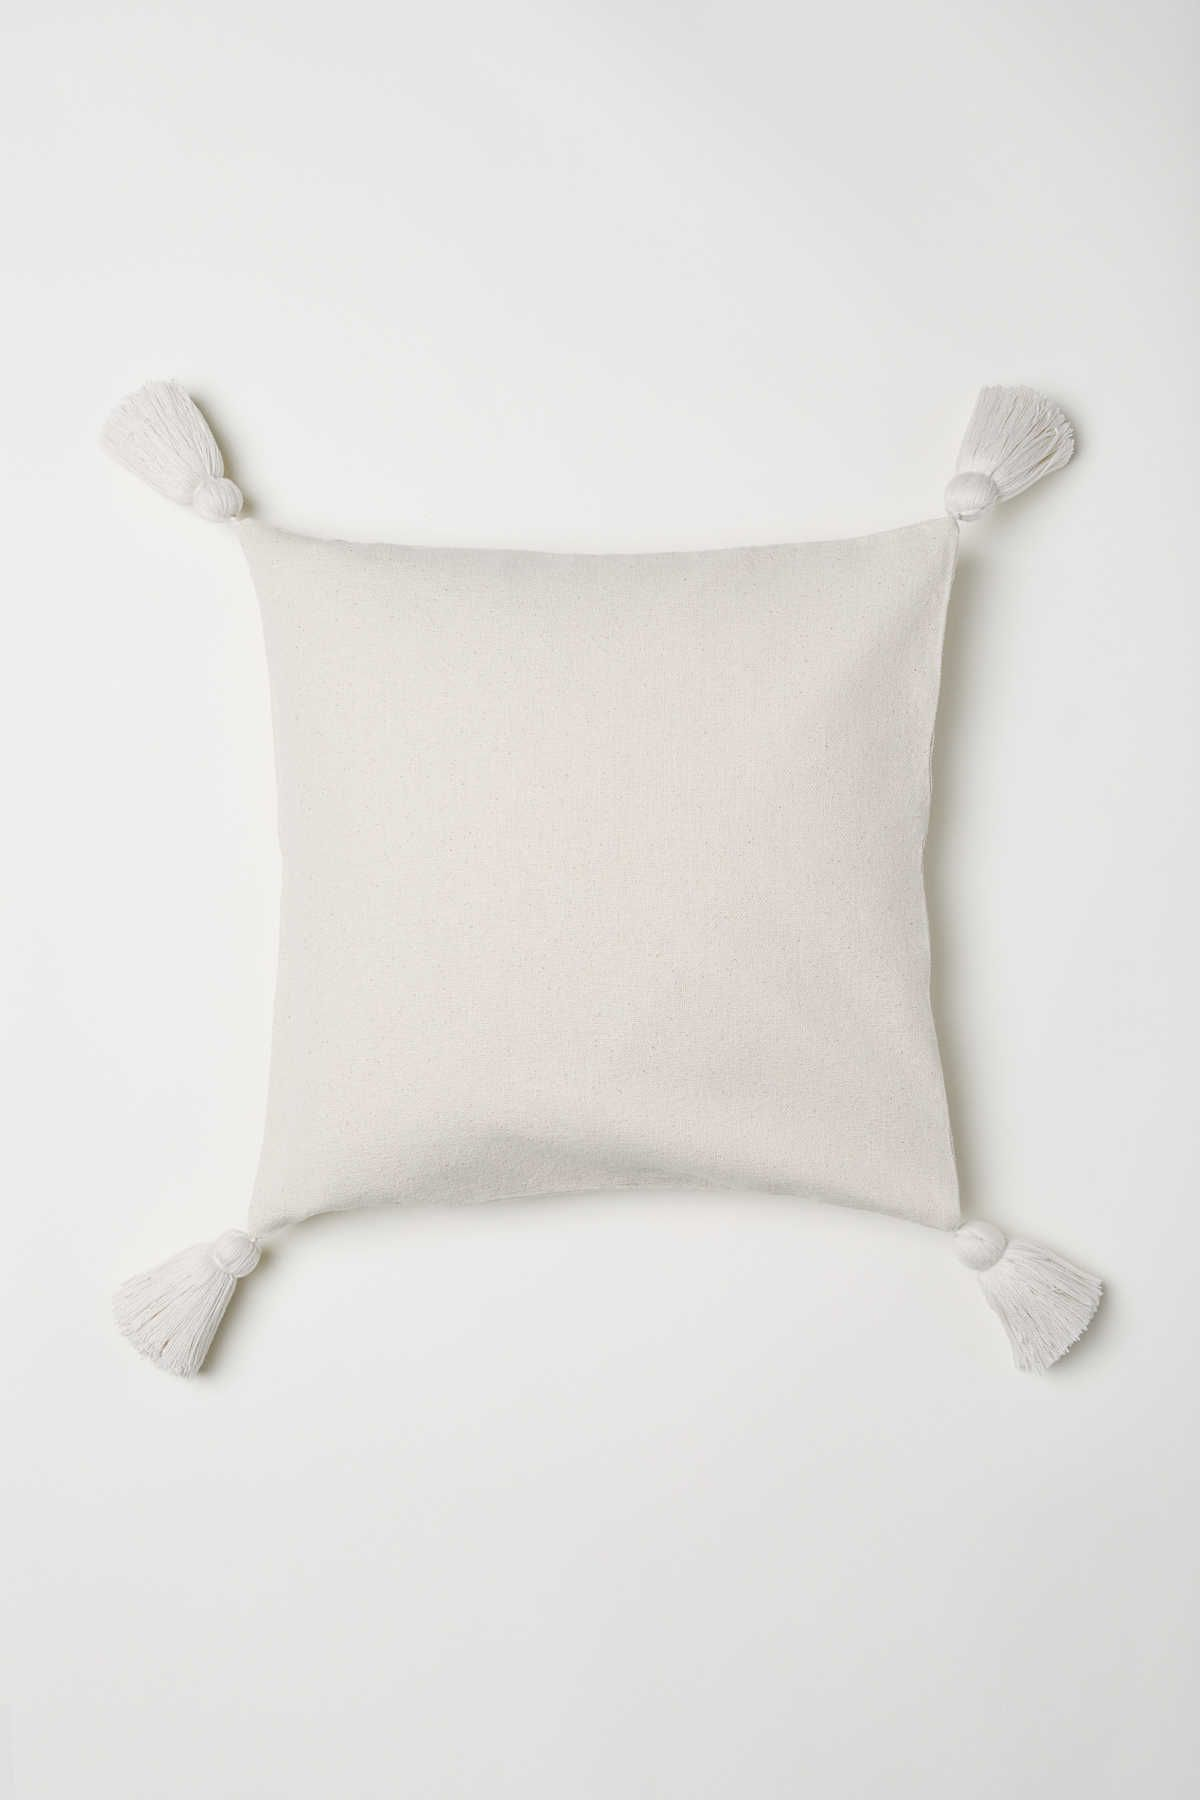 Cotton Canvas Cushion Cover With Tassels At Corners Concealed Zip